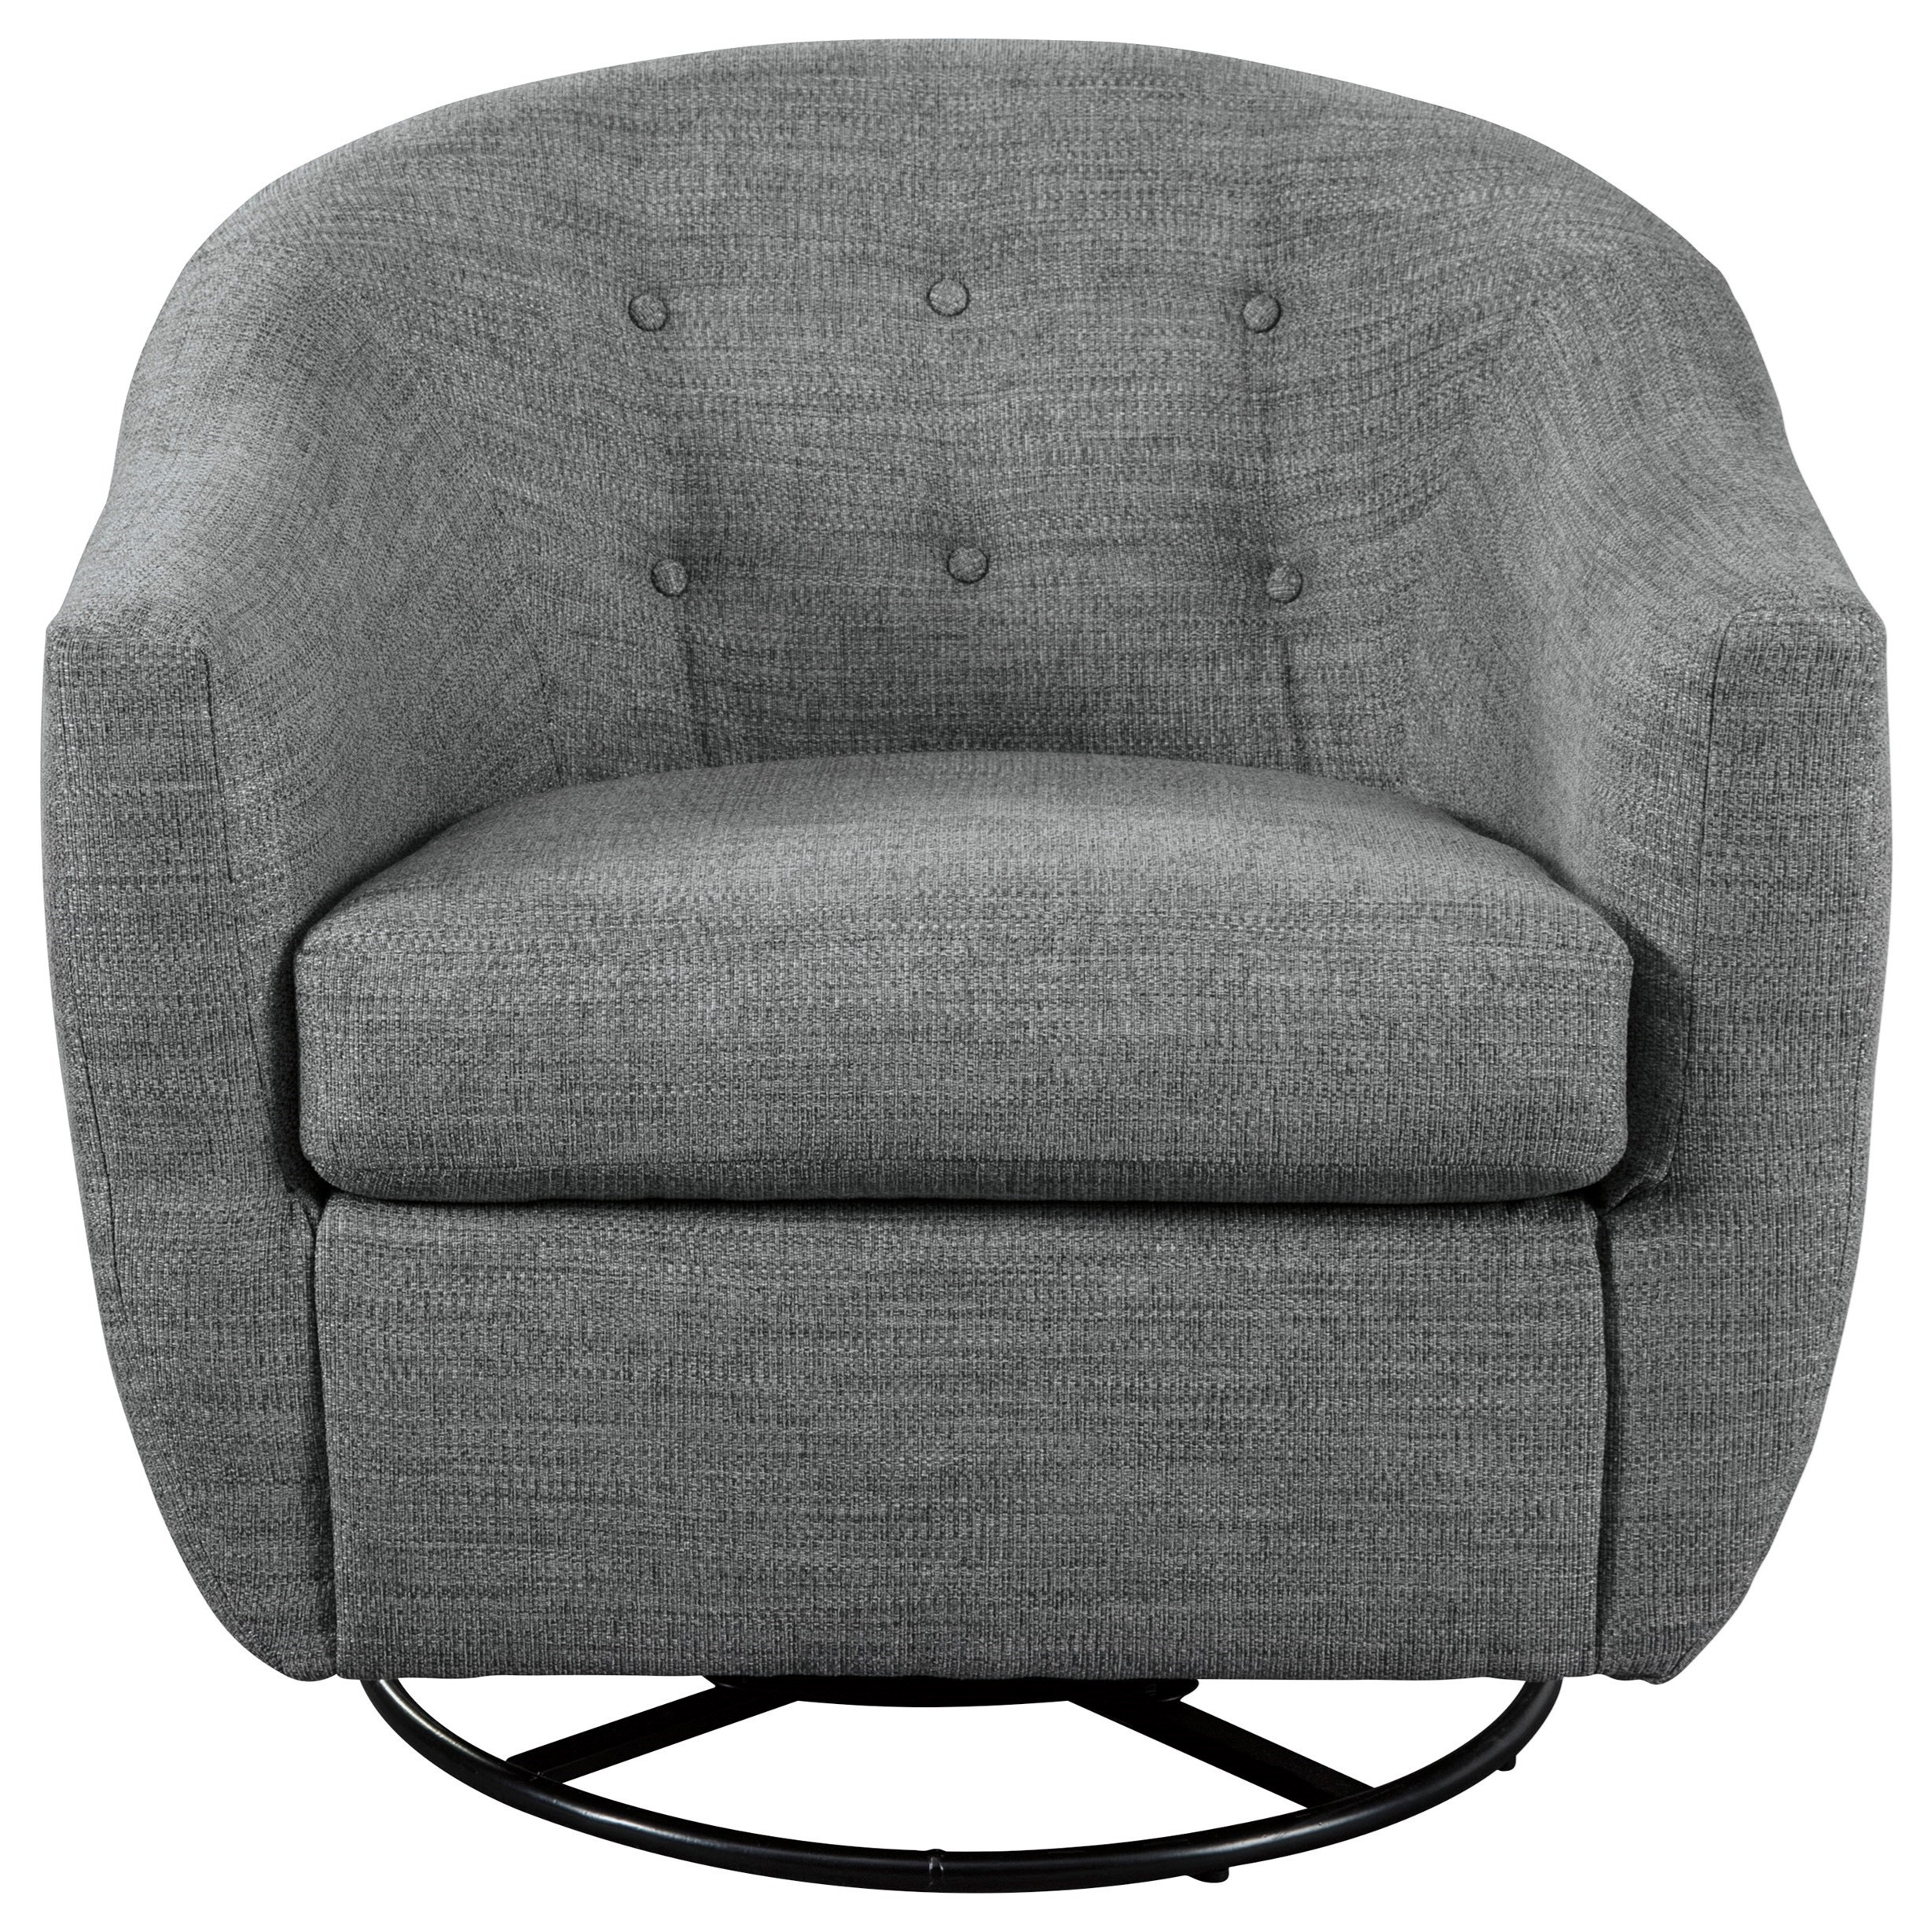 Image of: Mandon Mid Century Modern Swivel Accent Chair Becker Furniture Upholstered Chairs